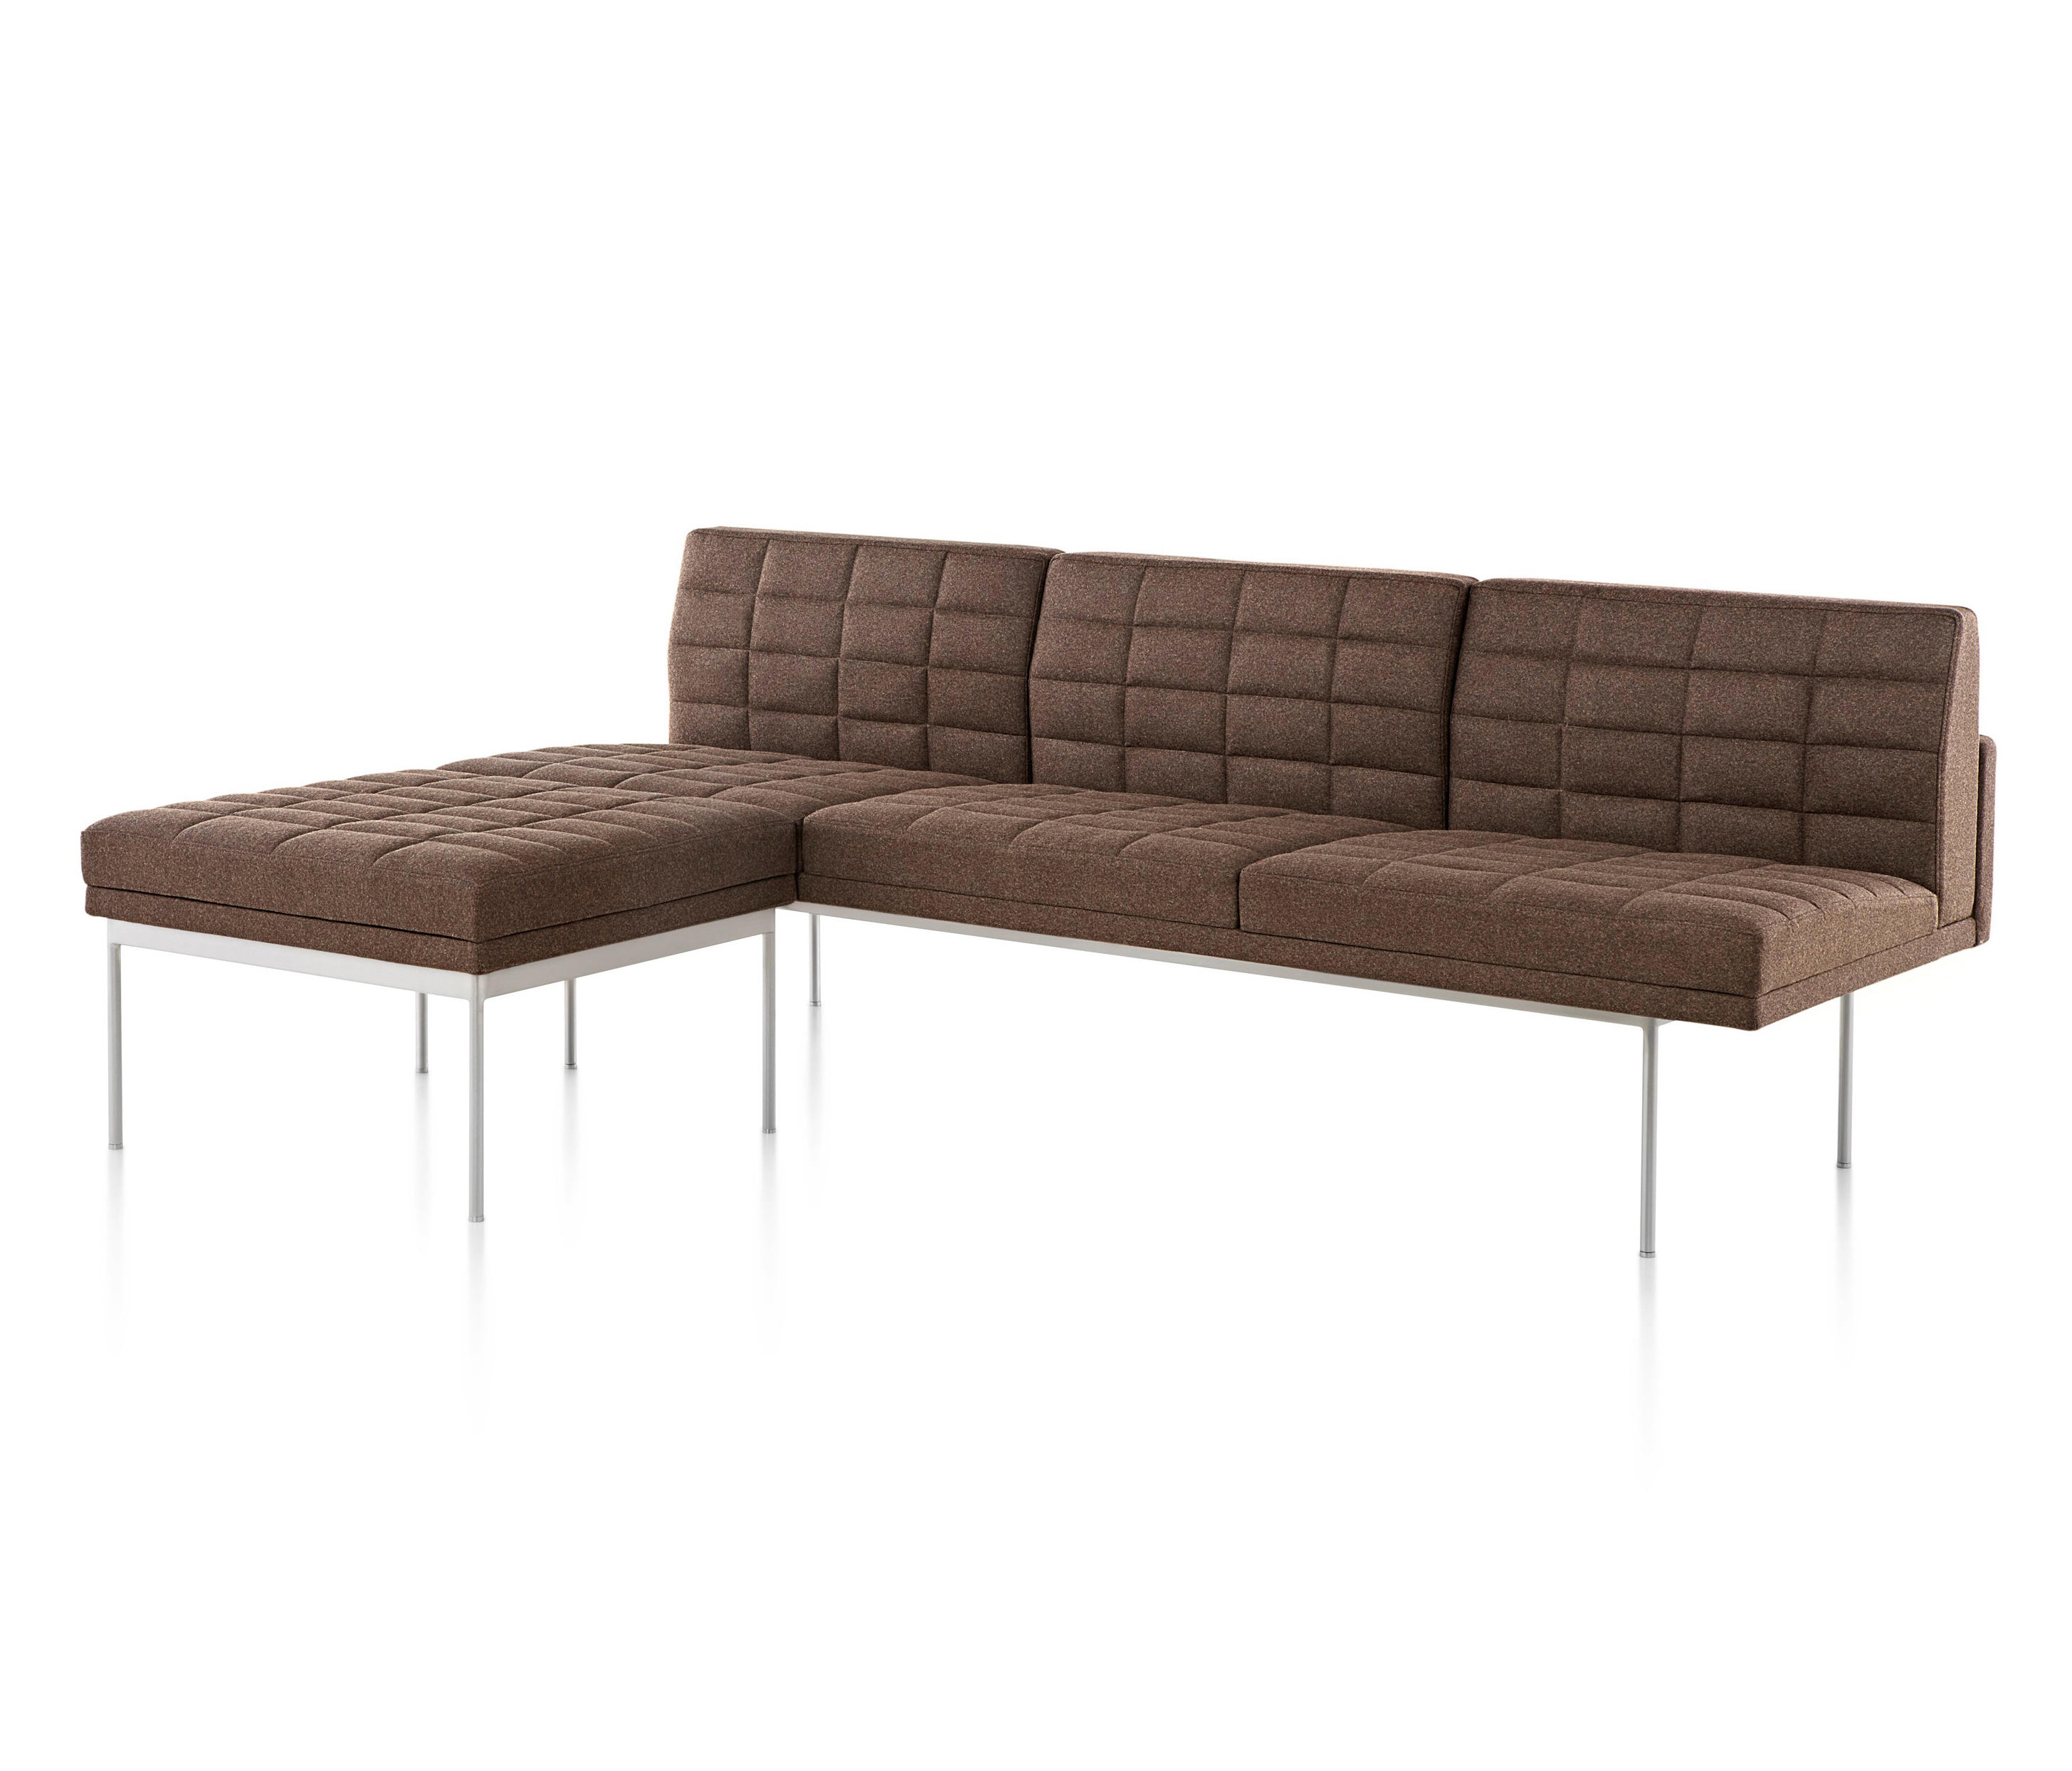 TUXEDO PONENT LOUNGE SOFA Lounge sofas from Herman Miller